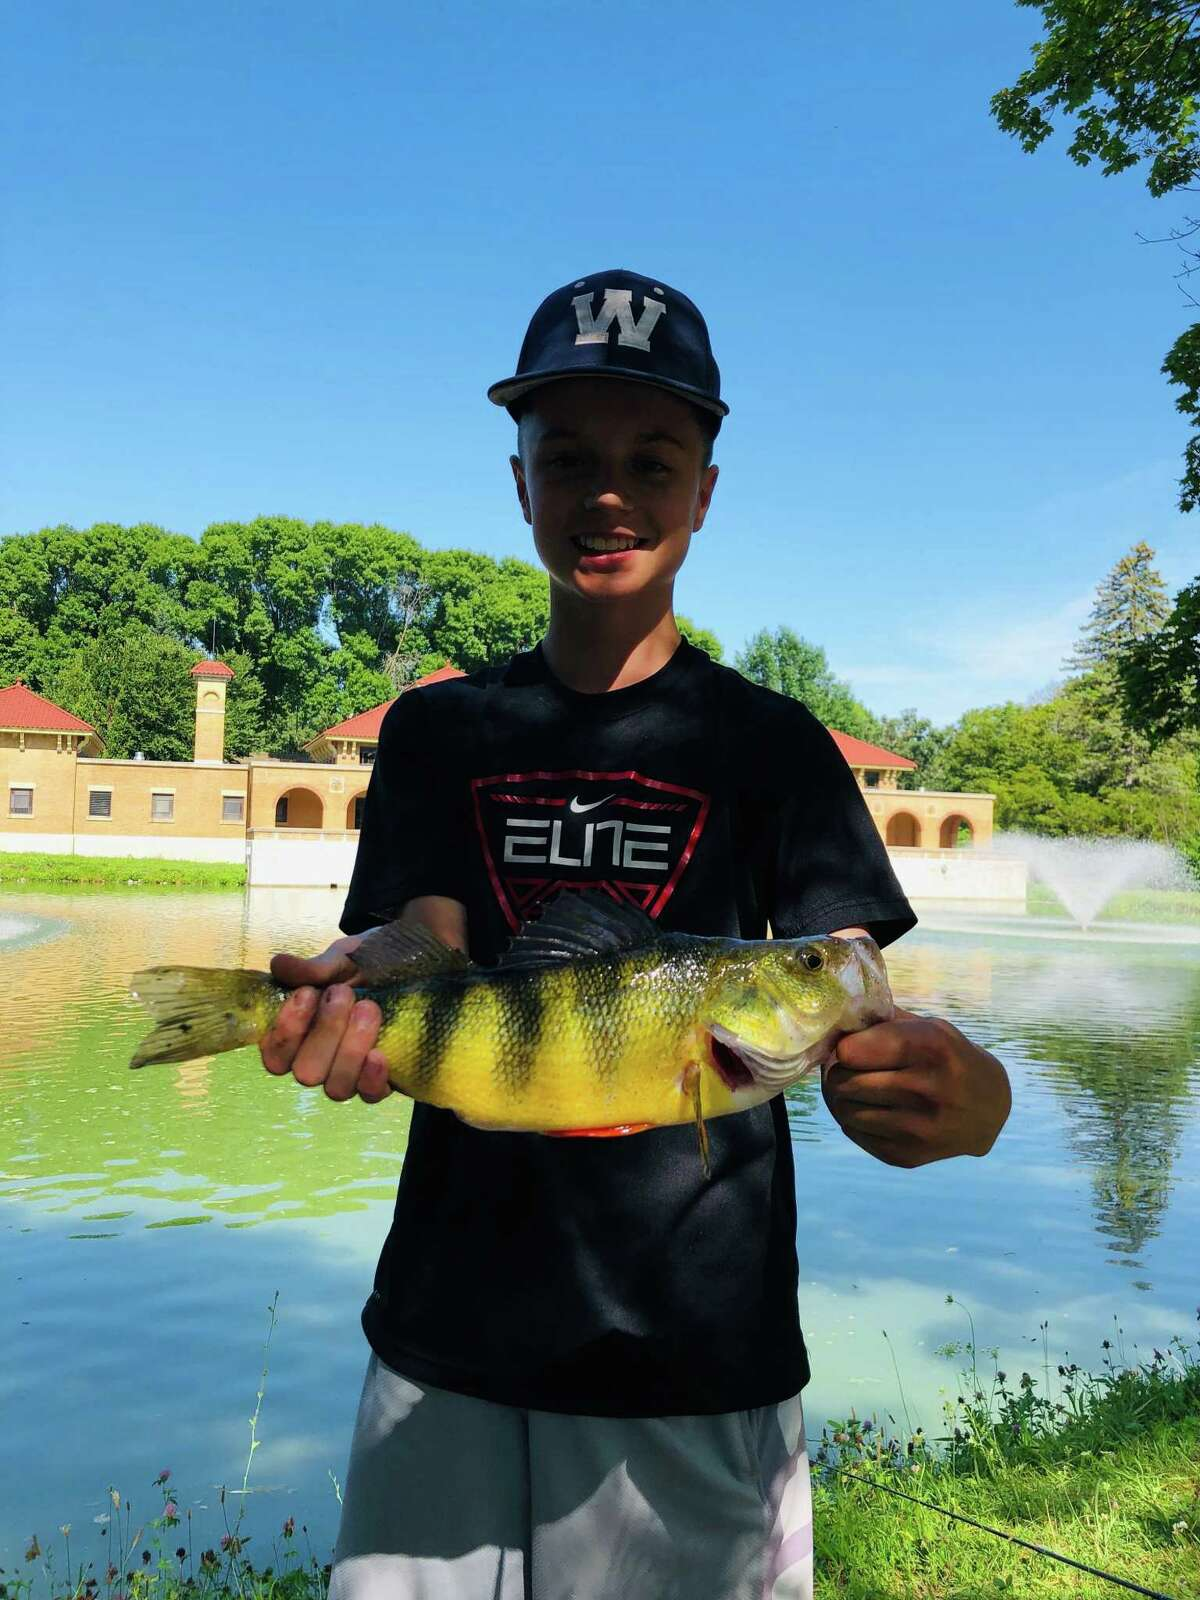 George Abdo, 14, caught this yellow perch on Monday at Albany's Washington Park Lake, estimated at 3 pounds, 5 ounces. That comes close to the New York state record yellow perch weight of 3 pounds, 8 ounces, dating from 1982 in Lake Erie, says his dad, Nick Abdo of Glenmont. George was fishing with his brother Christian, 17.